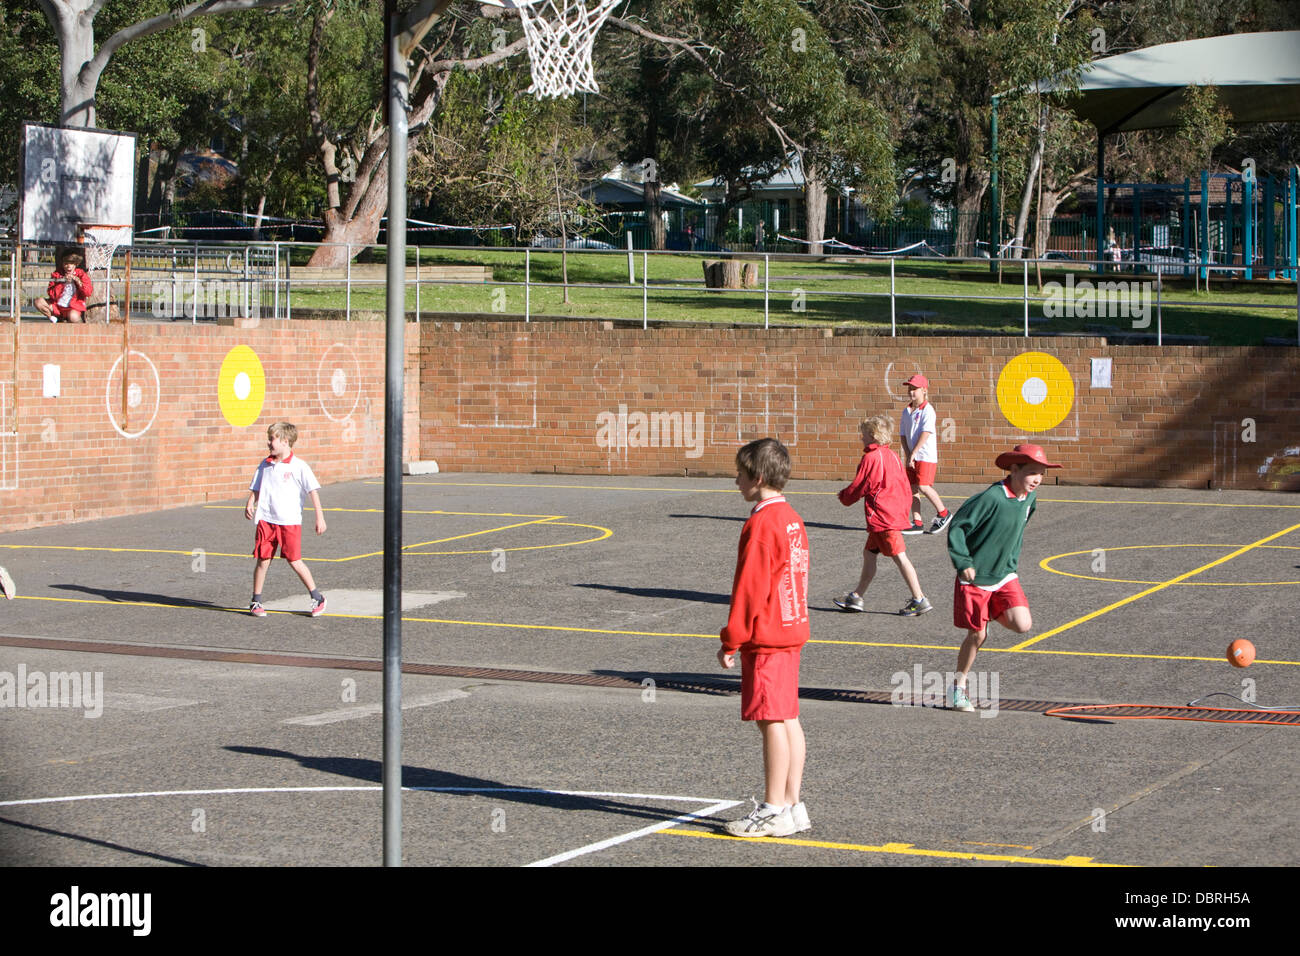 pupils at an australian primary school in sydney - Stock Image